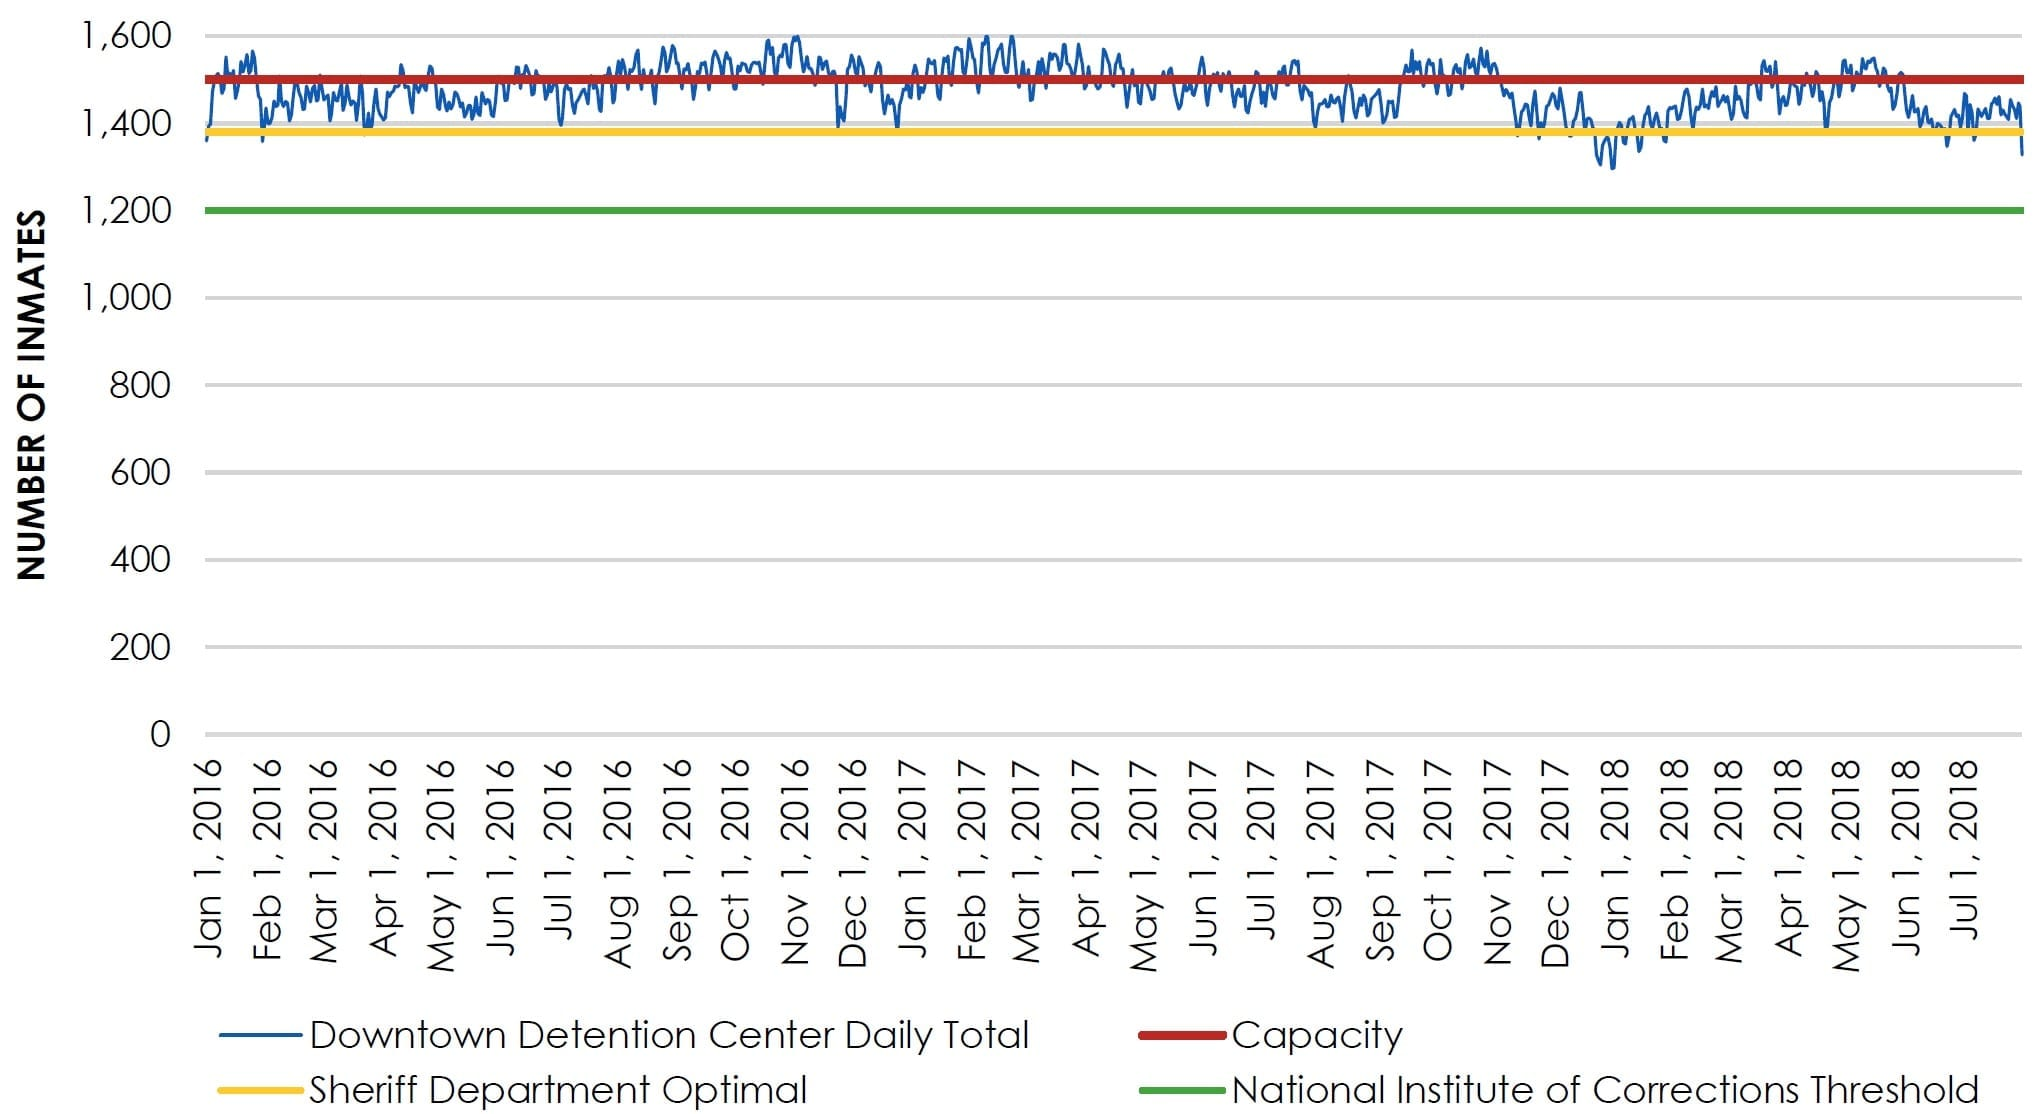 ChartH—Daily Jail Population and Capacity for the Downtown Detention Center(appendix)